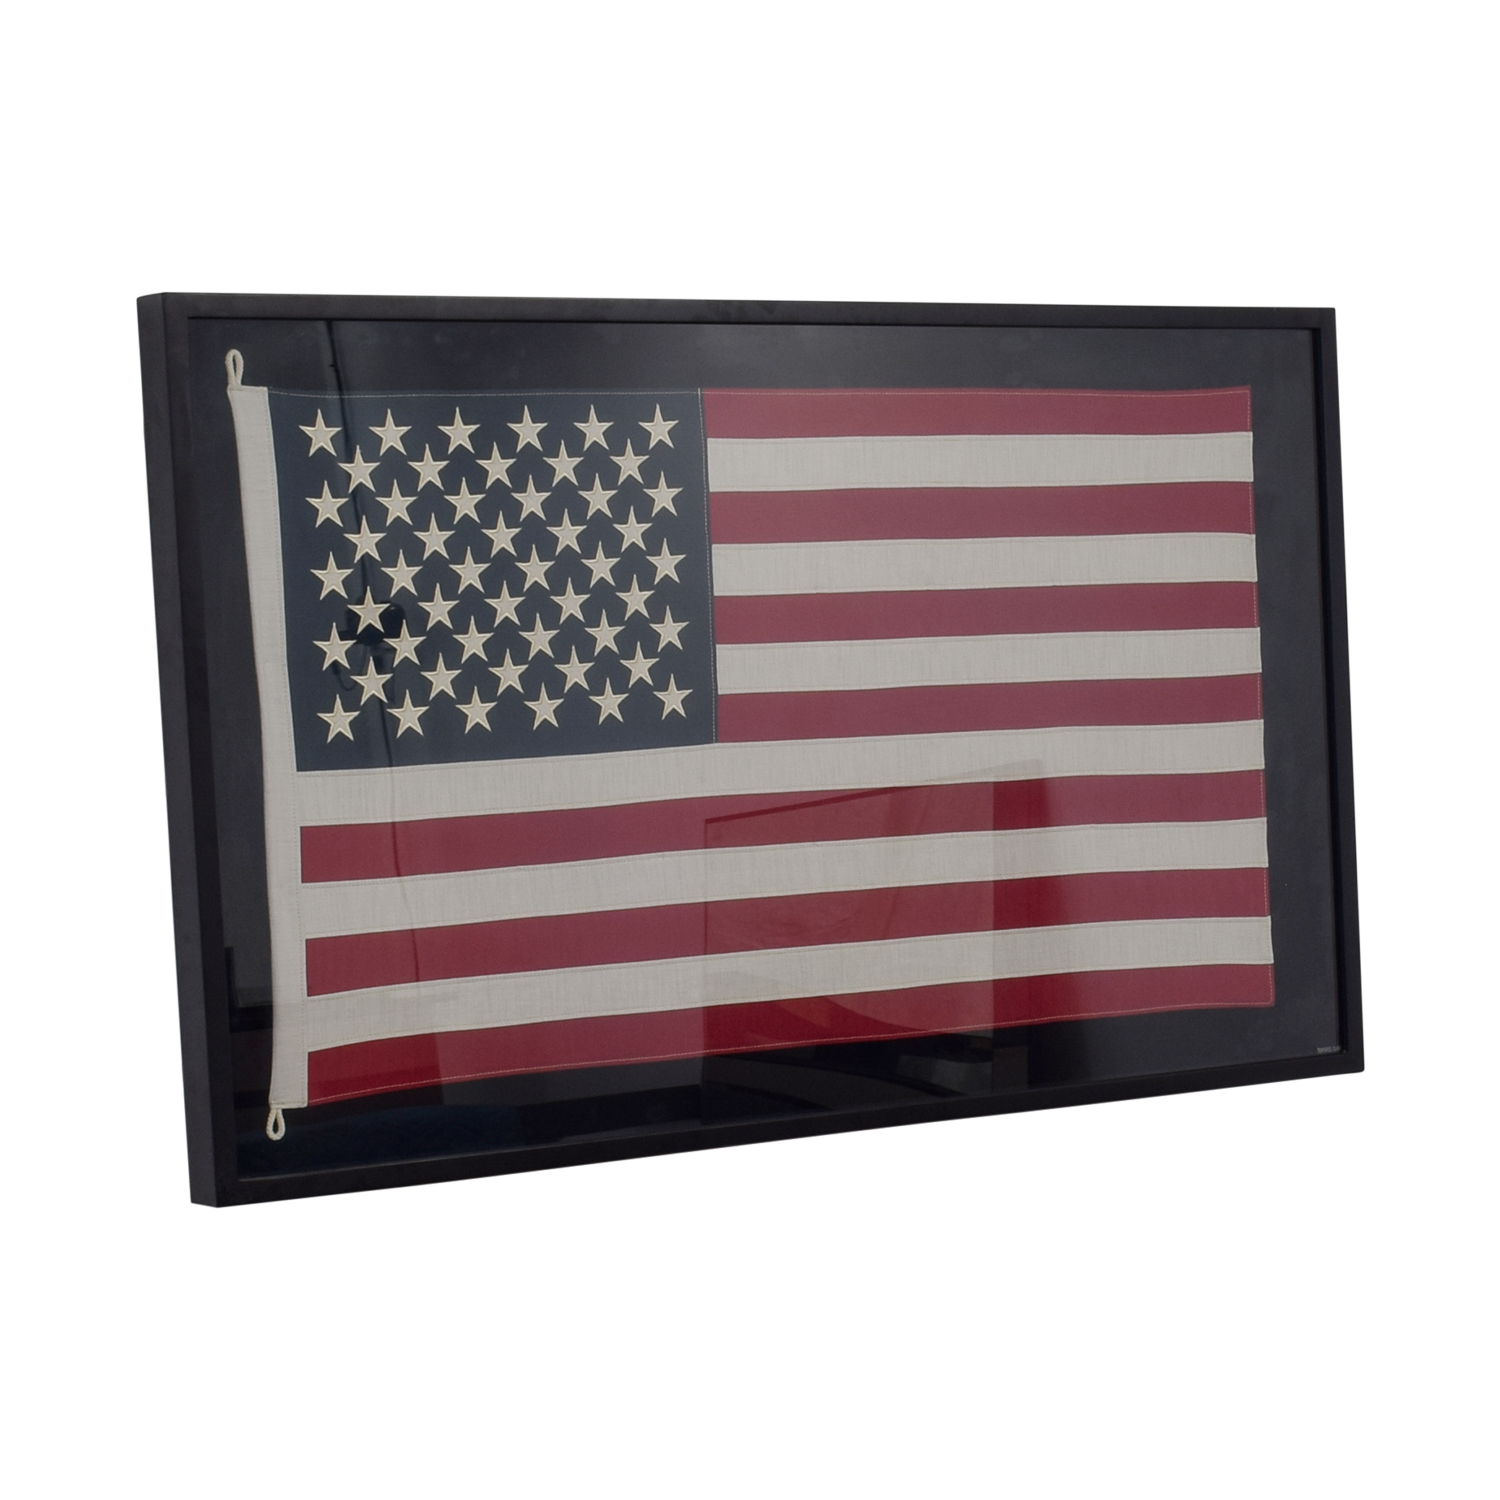 Restoration Hardware Restoration Hardware USA Framed Flag used